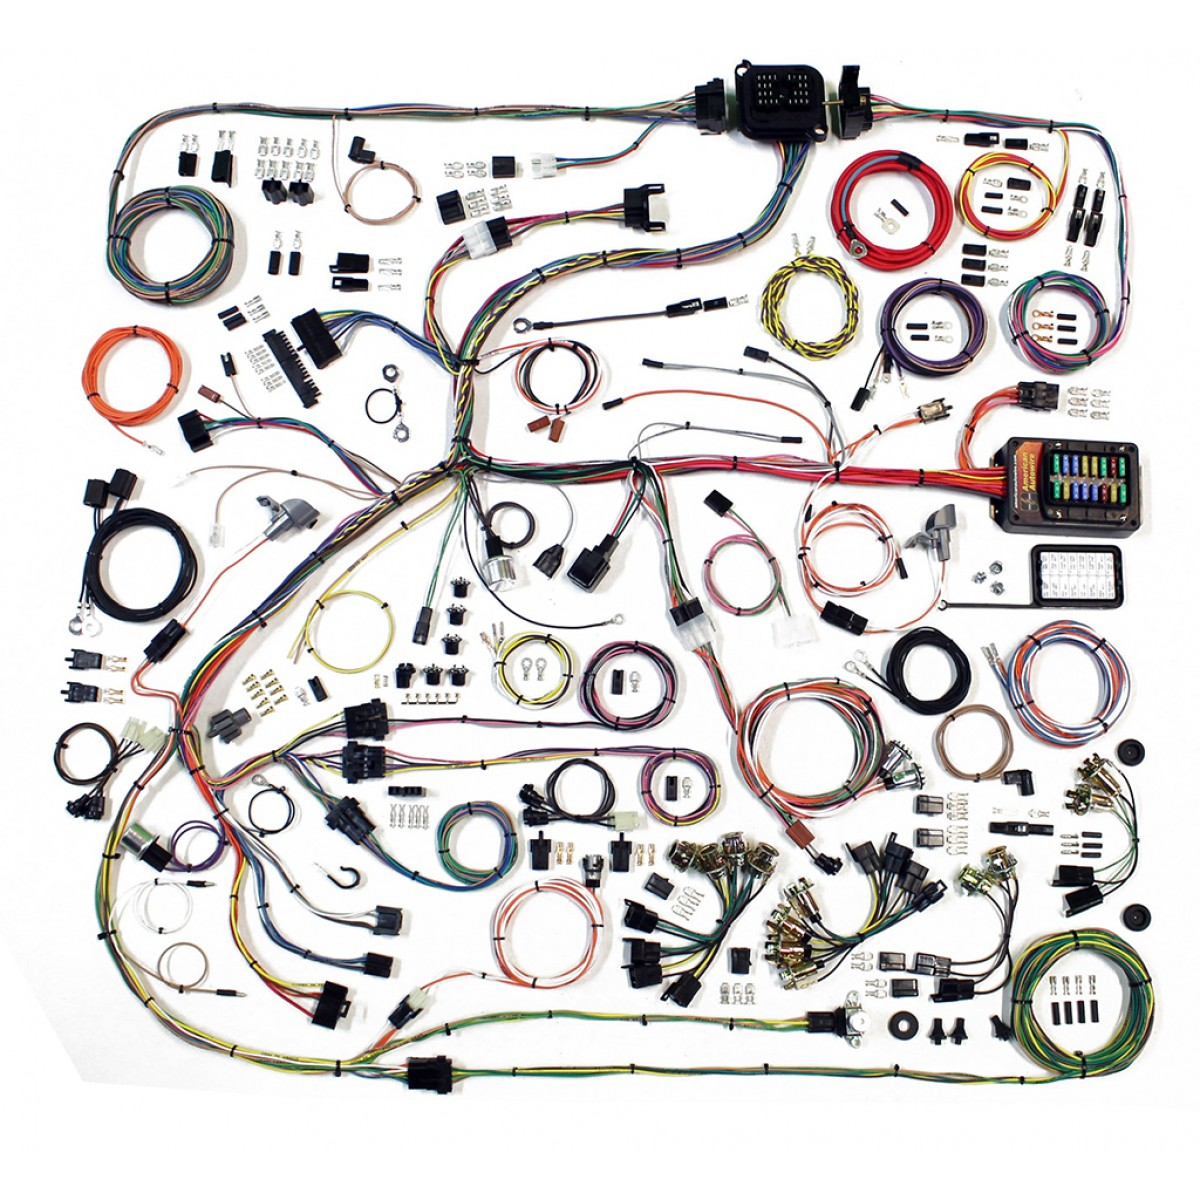 1968 Plymouth Road Runner Wiring Harness Books Of Diagram Eclipse Fuse Box Car Truck Parts Ebay Complete Kit 70 Satellite Rh Code510 Com